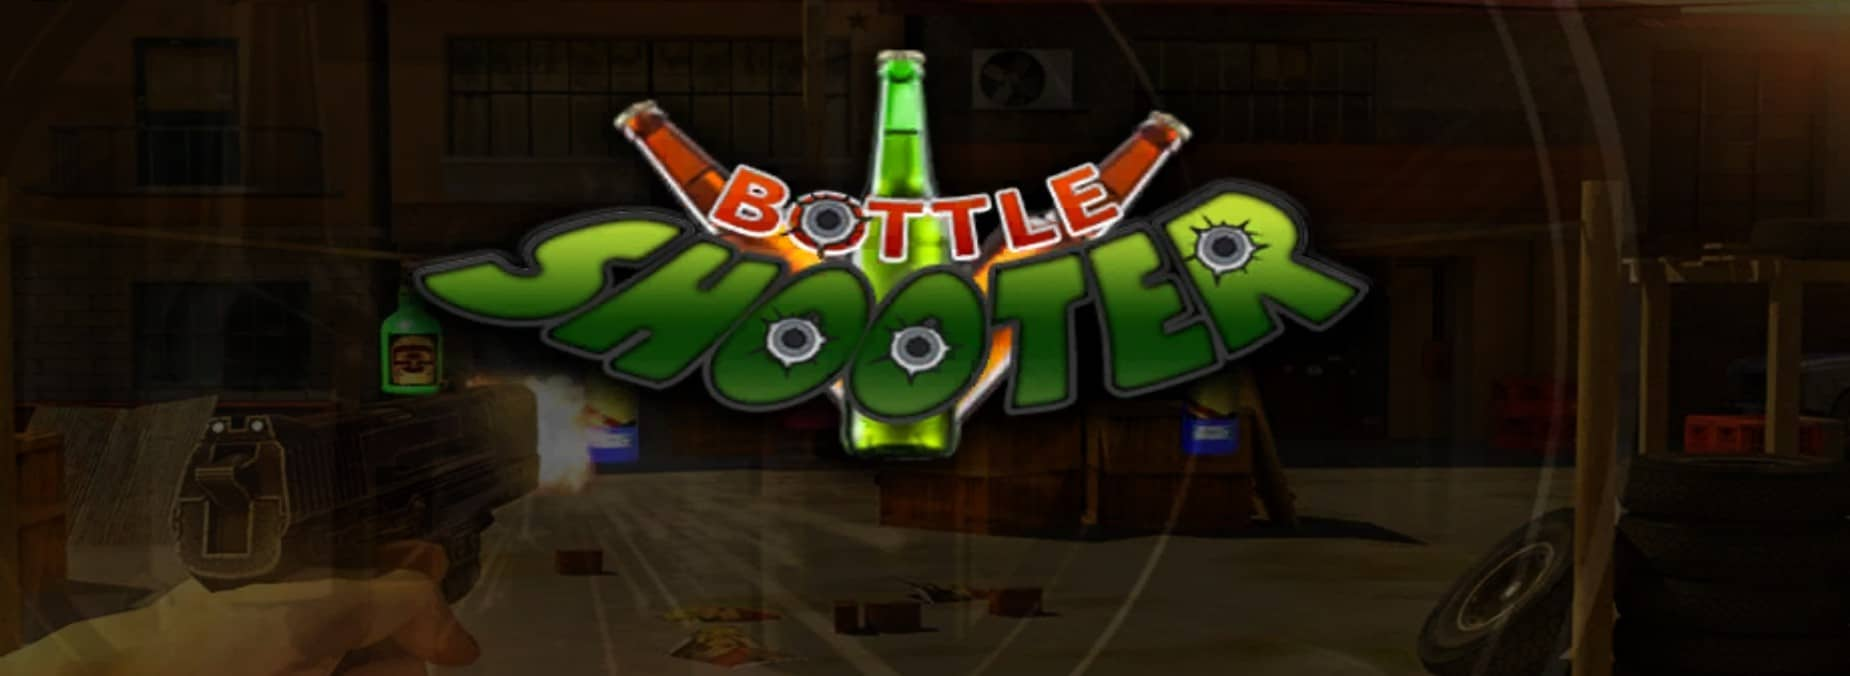 Download Real Bottle Shooter Game APK – for Android 10